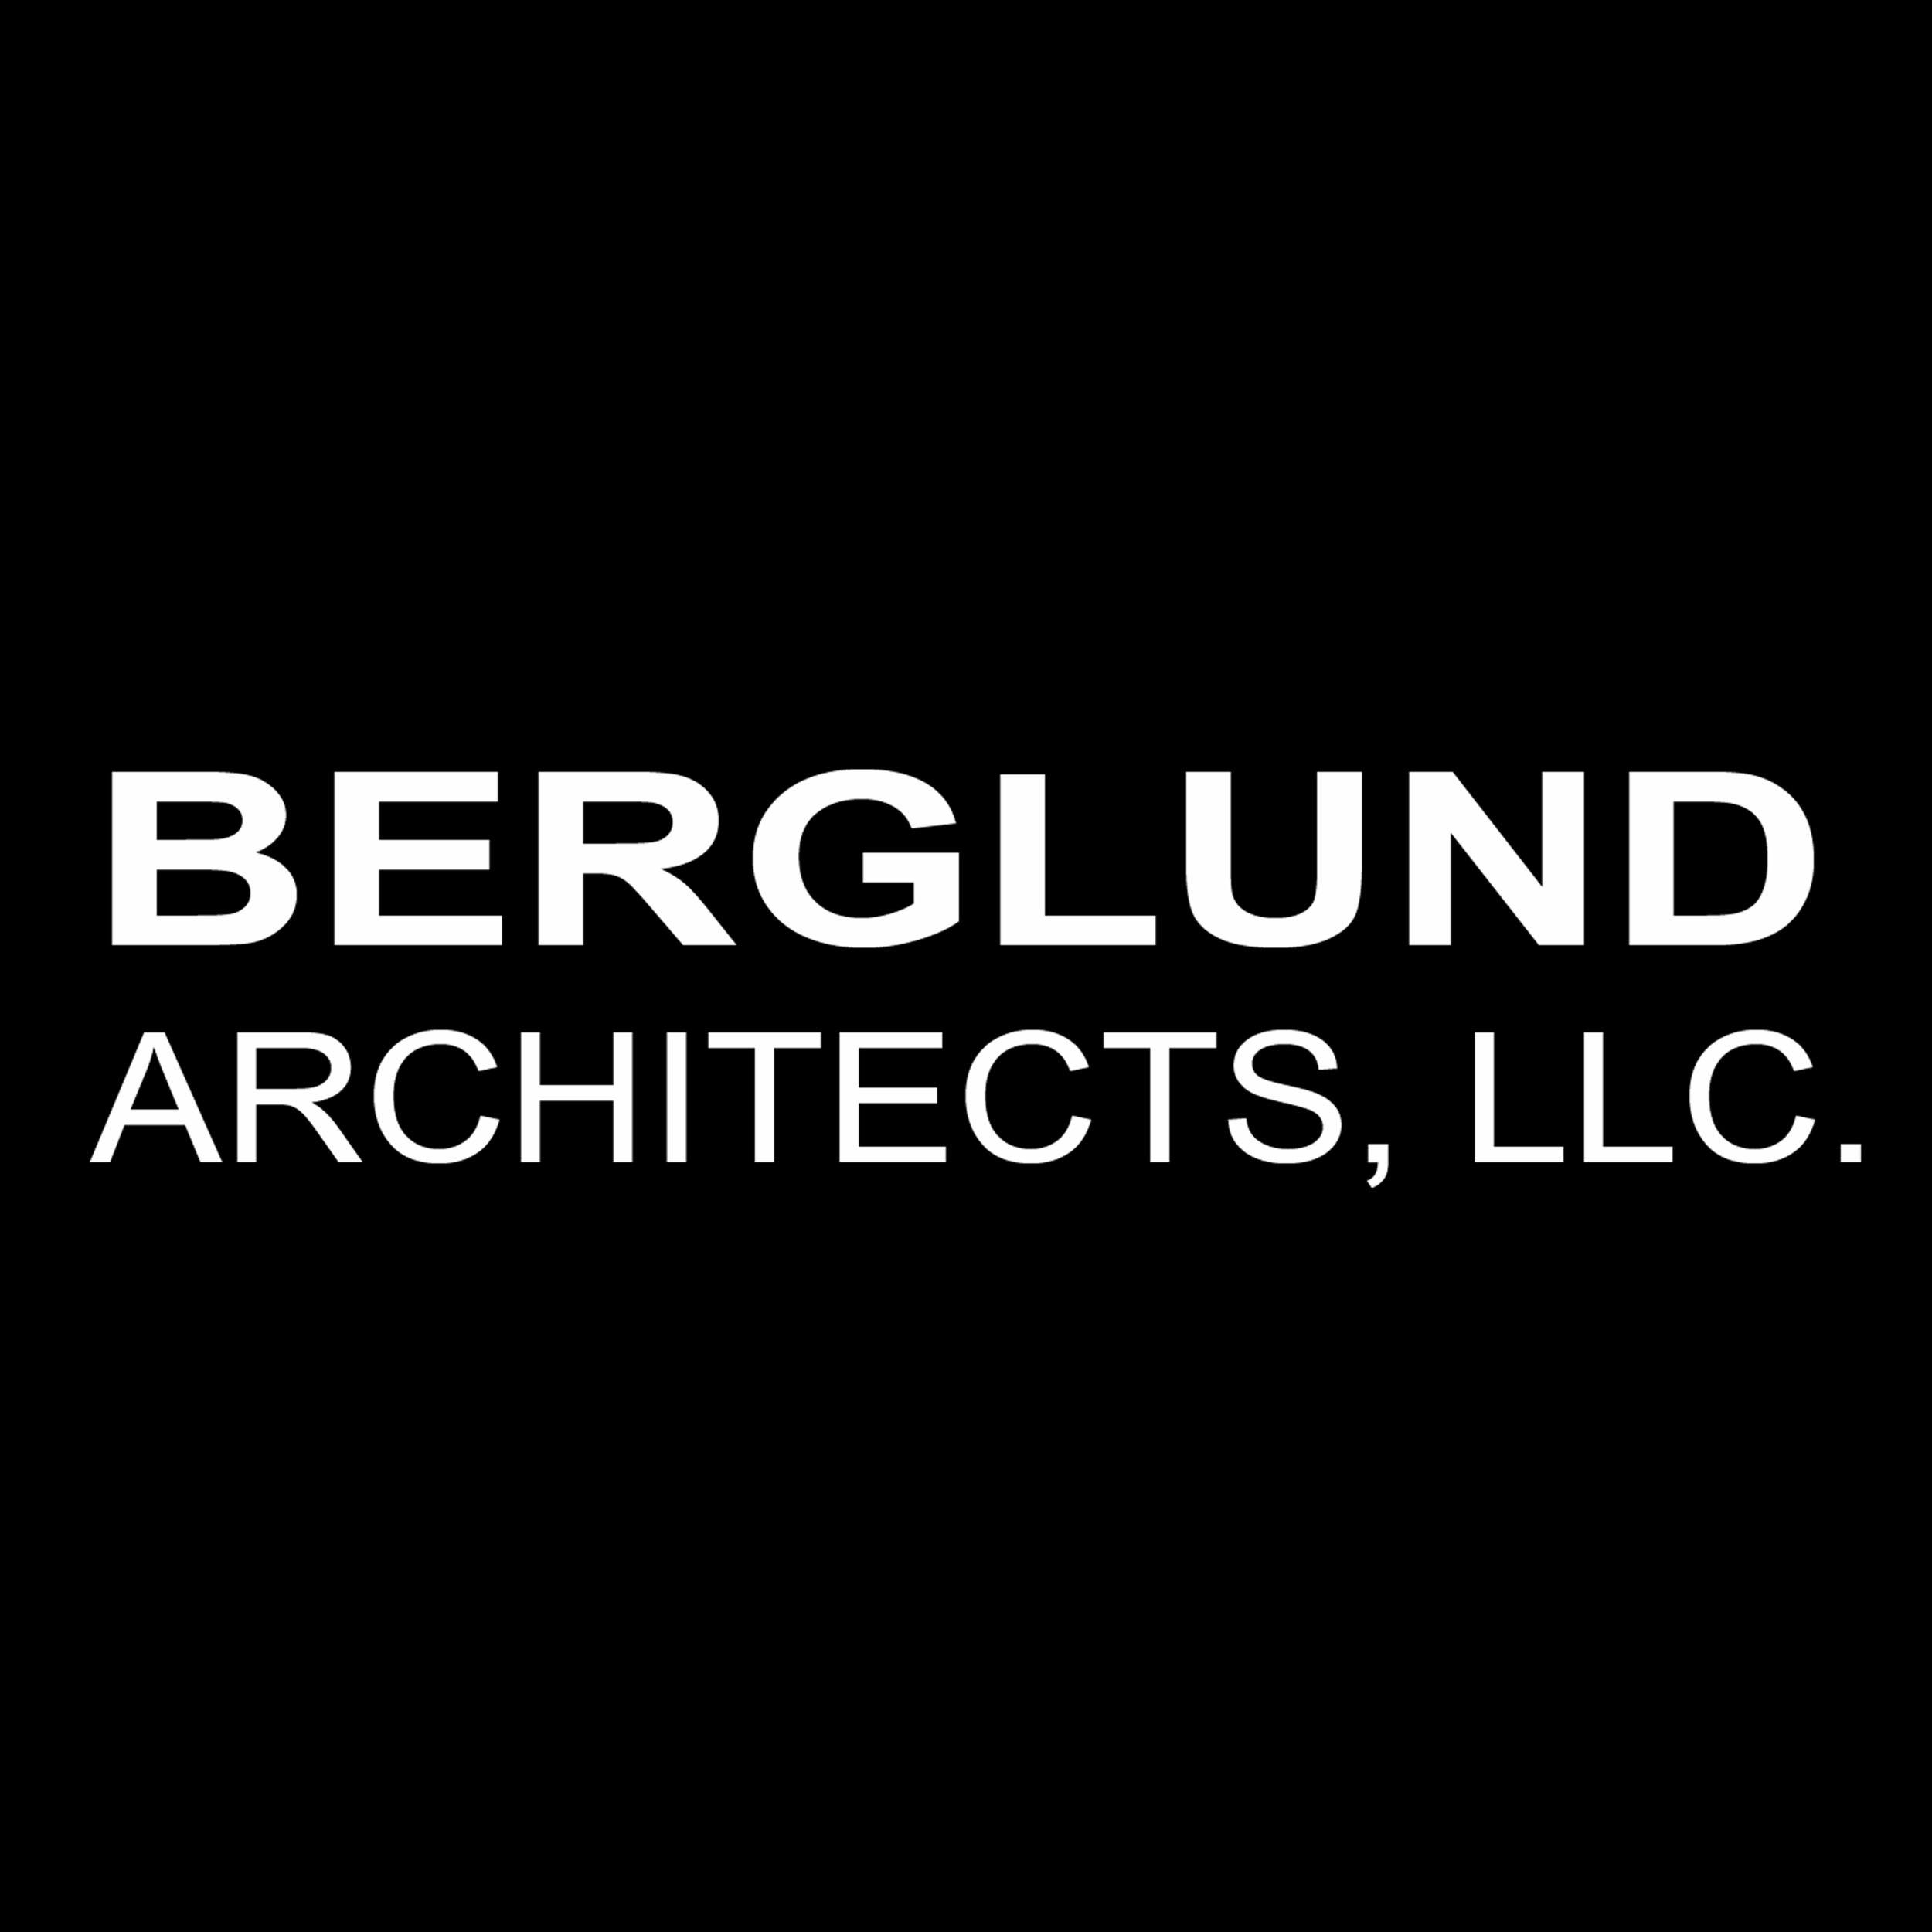 Berglund-Logo-stacked-square-3000x3000px.jpg